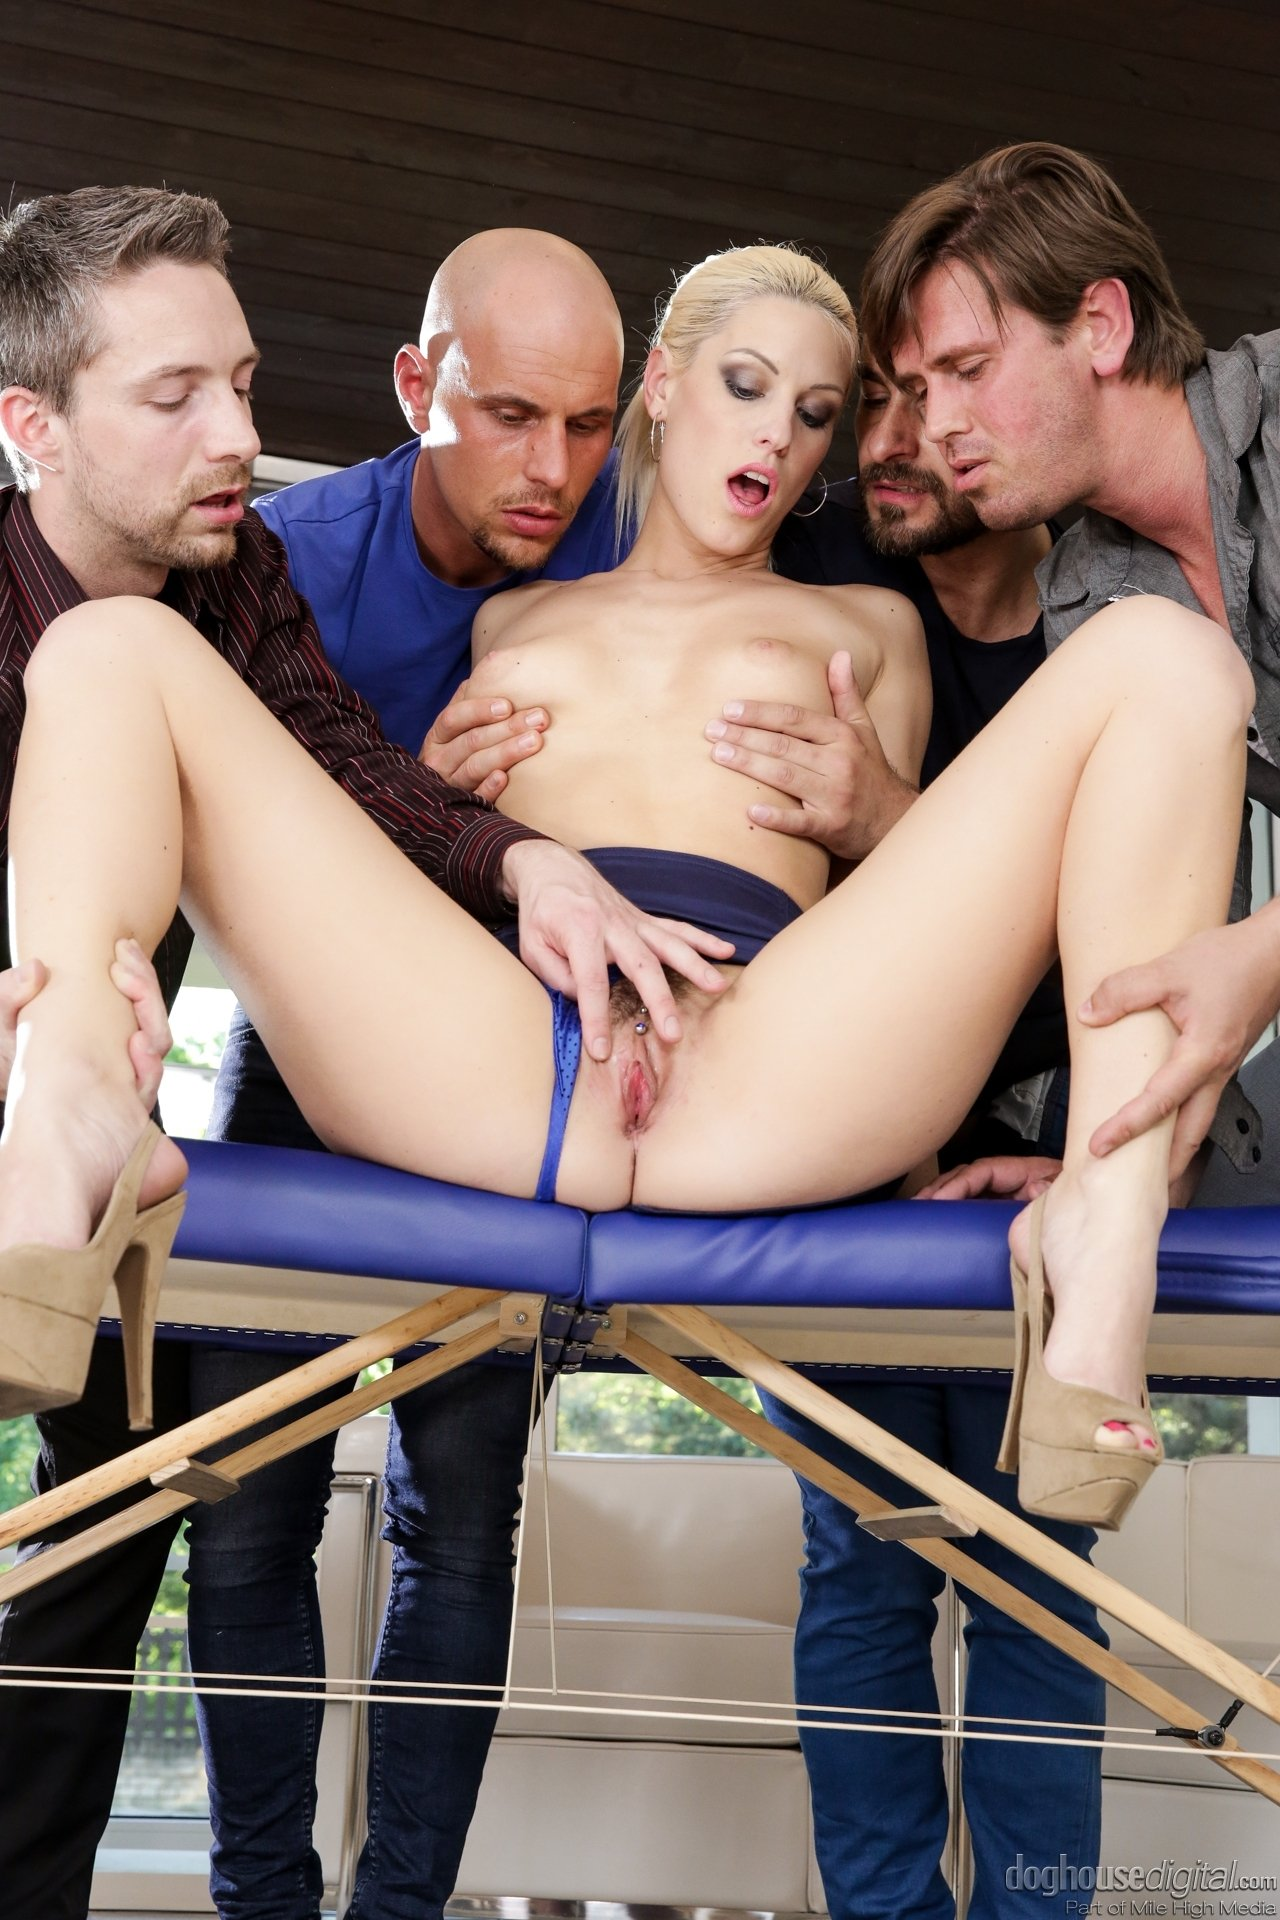 Amateur powerhouse poontang 02 scene 4 captain willy